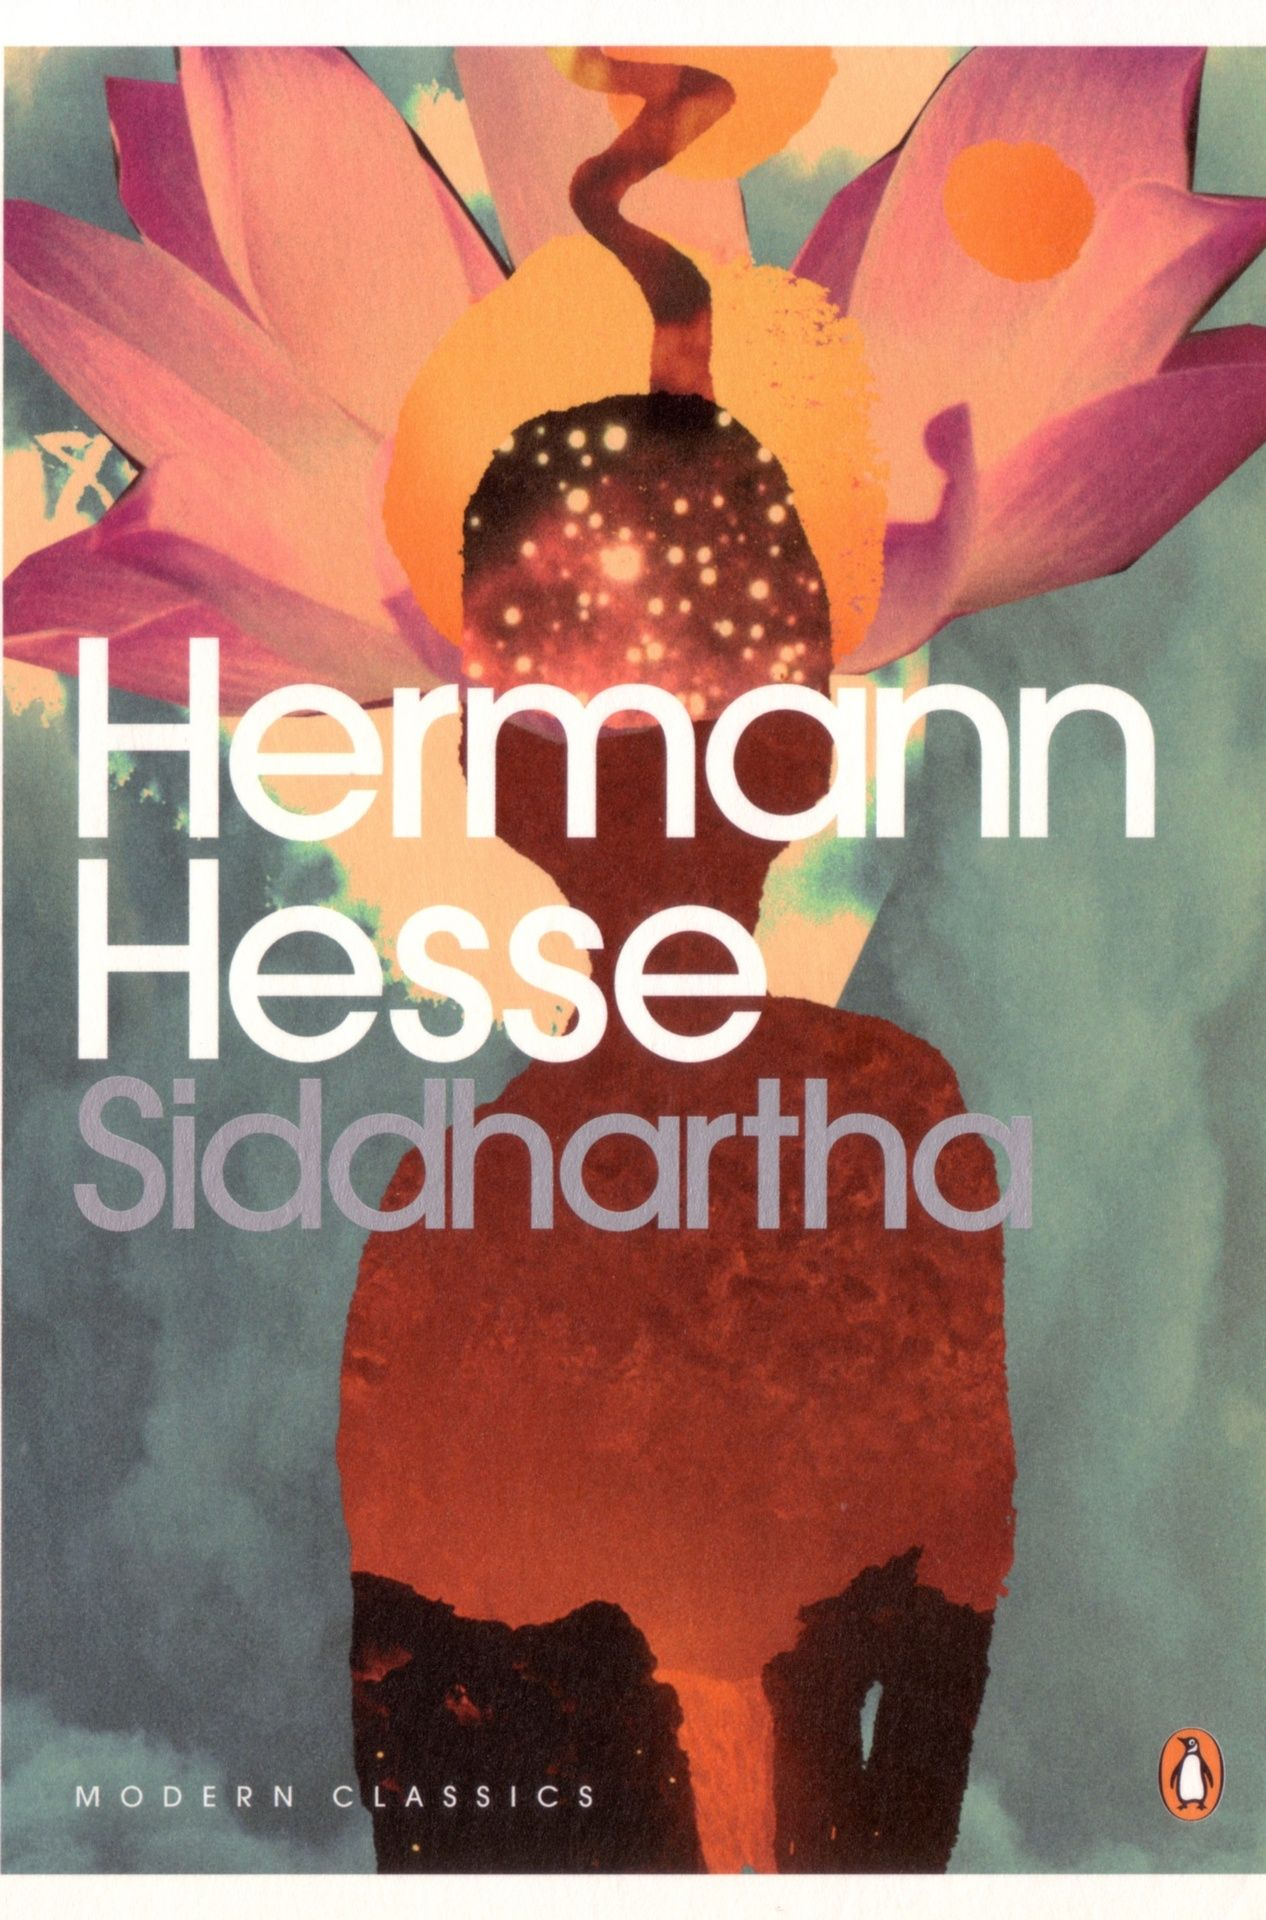 Modern Classic Book Covers ~ Hermann hesse siddhartha book covers pinterest